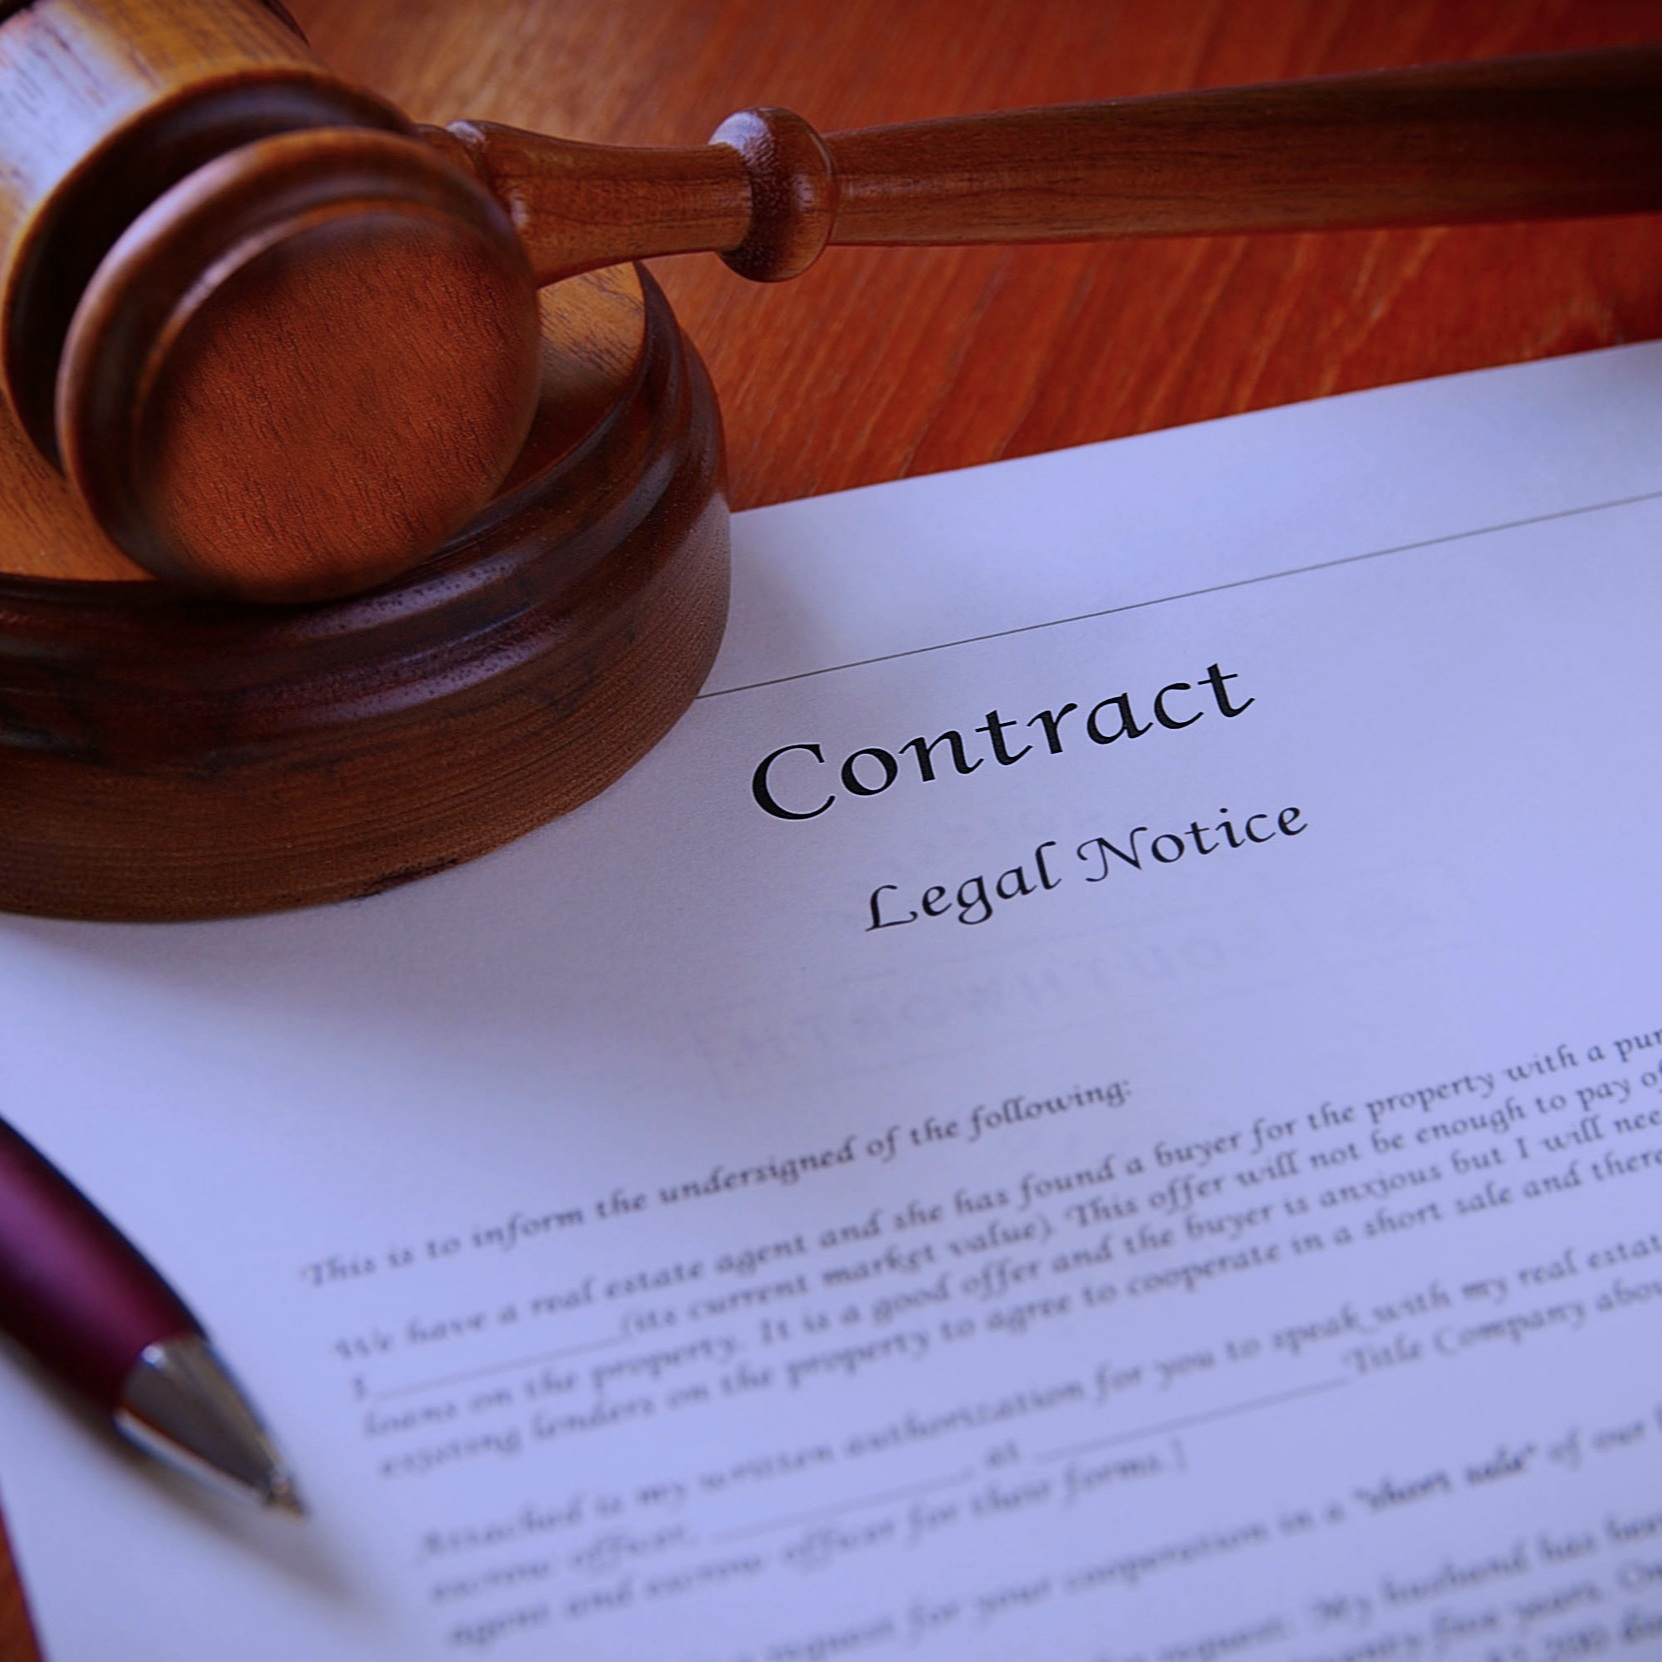 Contract - breaches of contract & contractual disputes - In the event you find yourself involved in a dispute relating to a breach of a contract claim or if someone no longer wishes to abide by the terms of your agreement, our lawyers can help you and work towards a favourable resolution. We can also review any contracts before you sign them to avoid potential disputes from arising in the future.